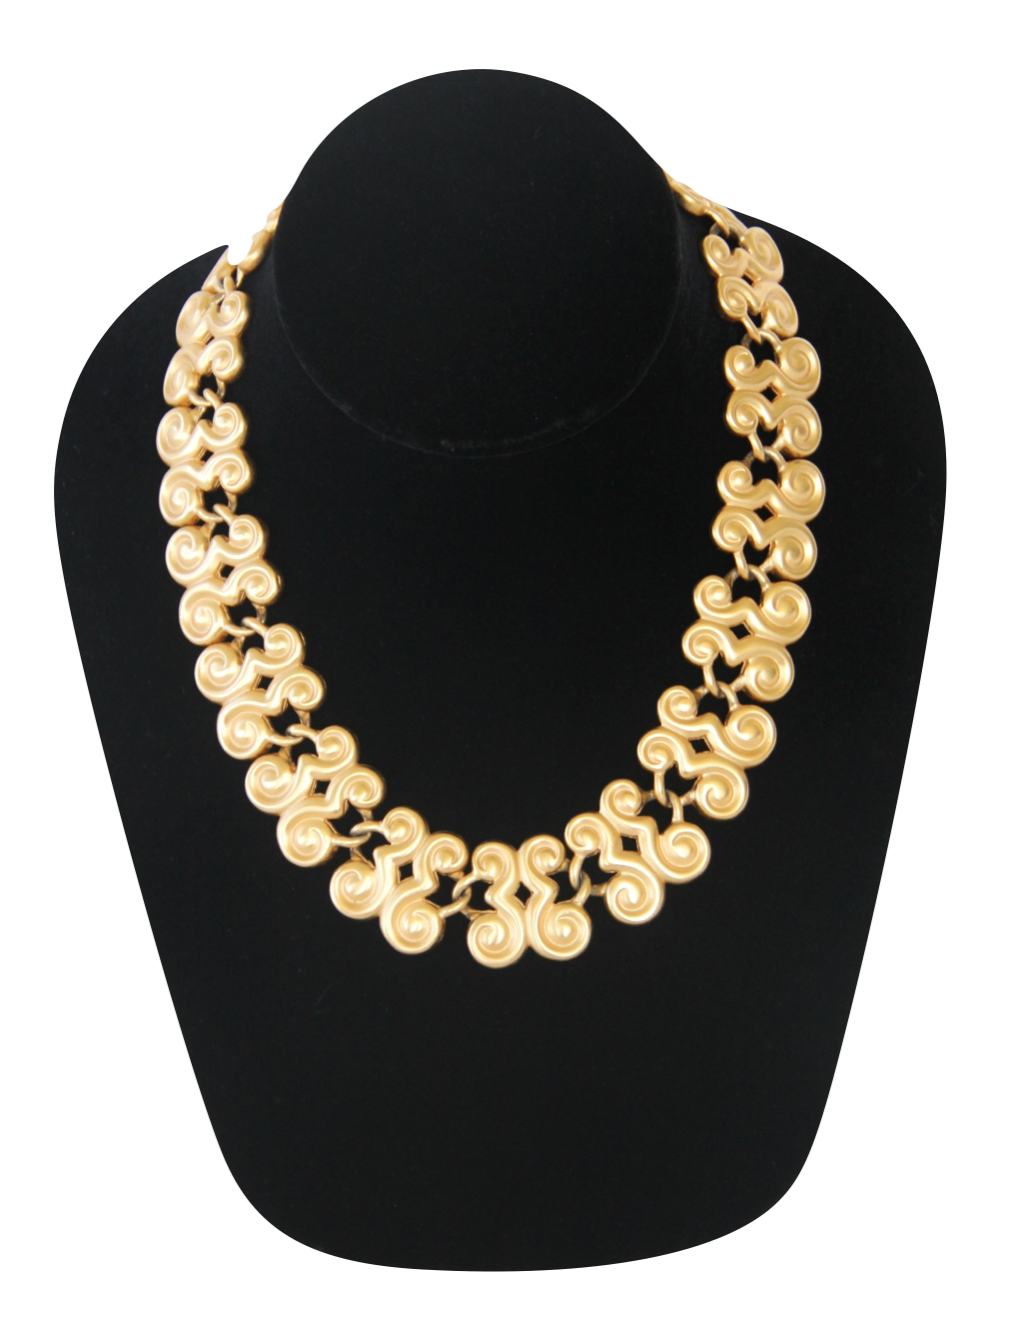 Tips for Purchasing Statement Necklaces @ Elizabeth, Marie, & Me